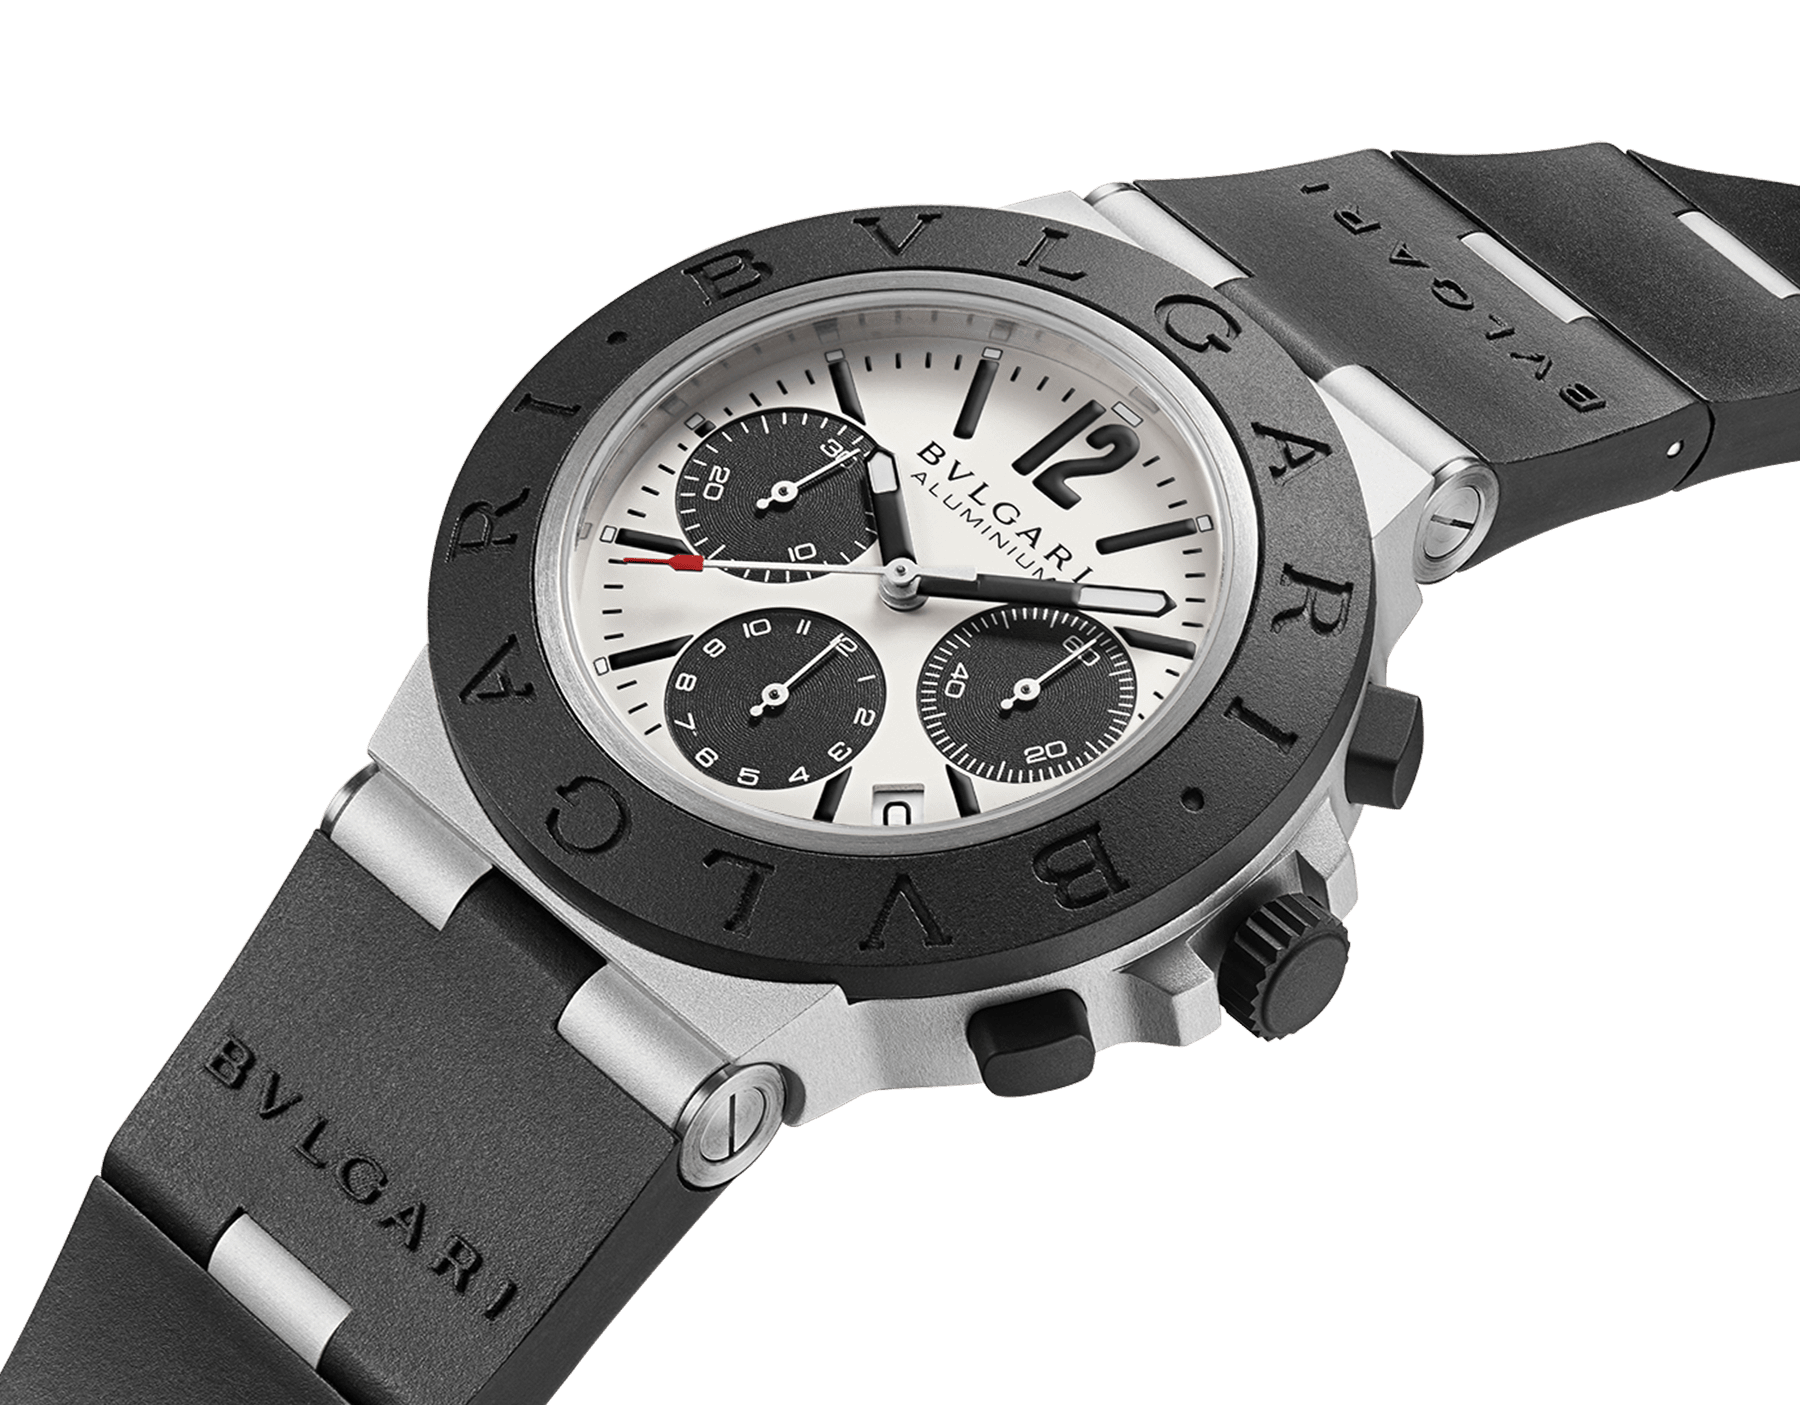 Bvlgari Aluminium watch with mechanical manufacture movement, automatic winding, chronograph, 40 mm aluminium and titanium case, black rubber bezel with BVLGARI BVLGARI engraving, grey dial and black rubber bracelet. Water resistant up to 100 metres 103383 image 2